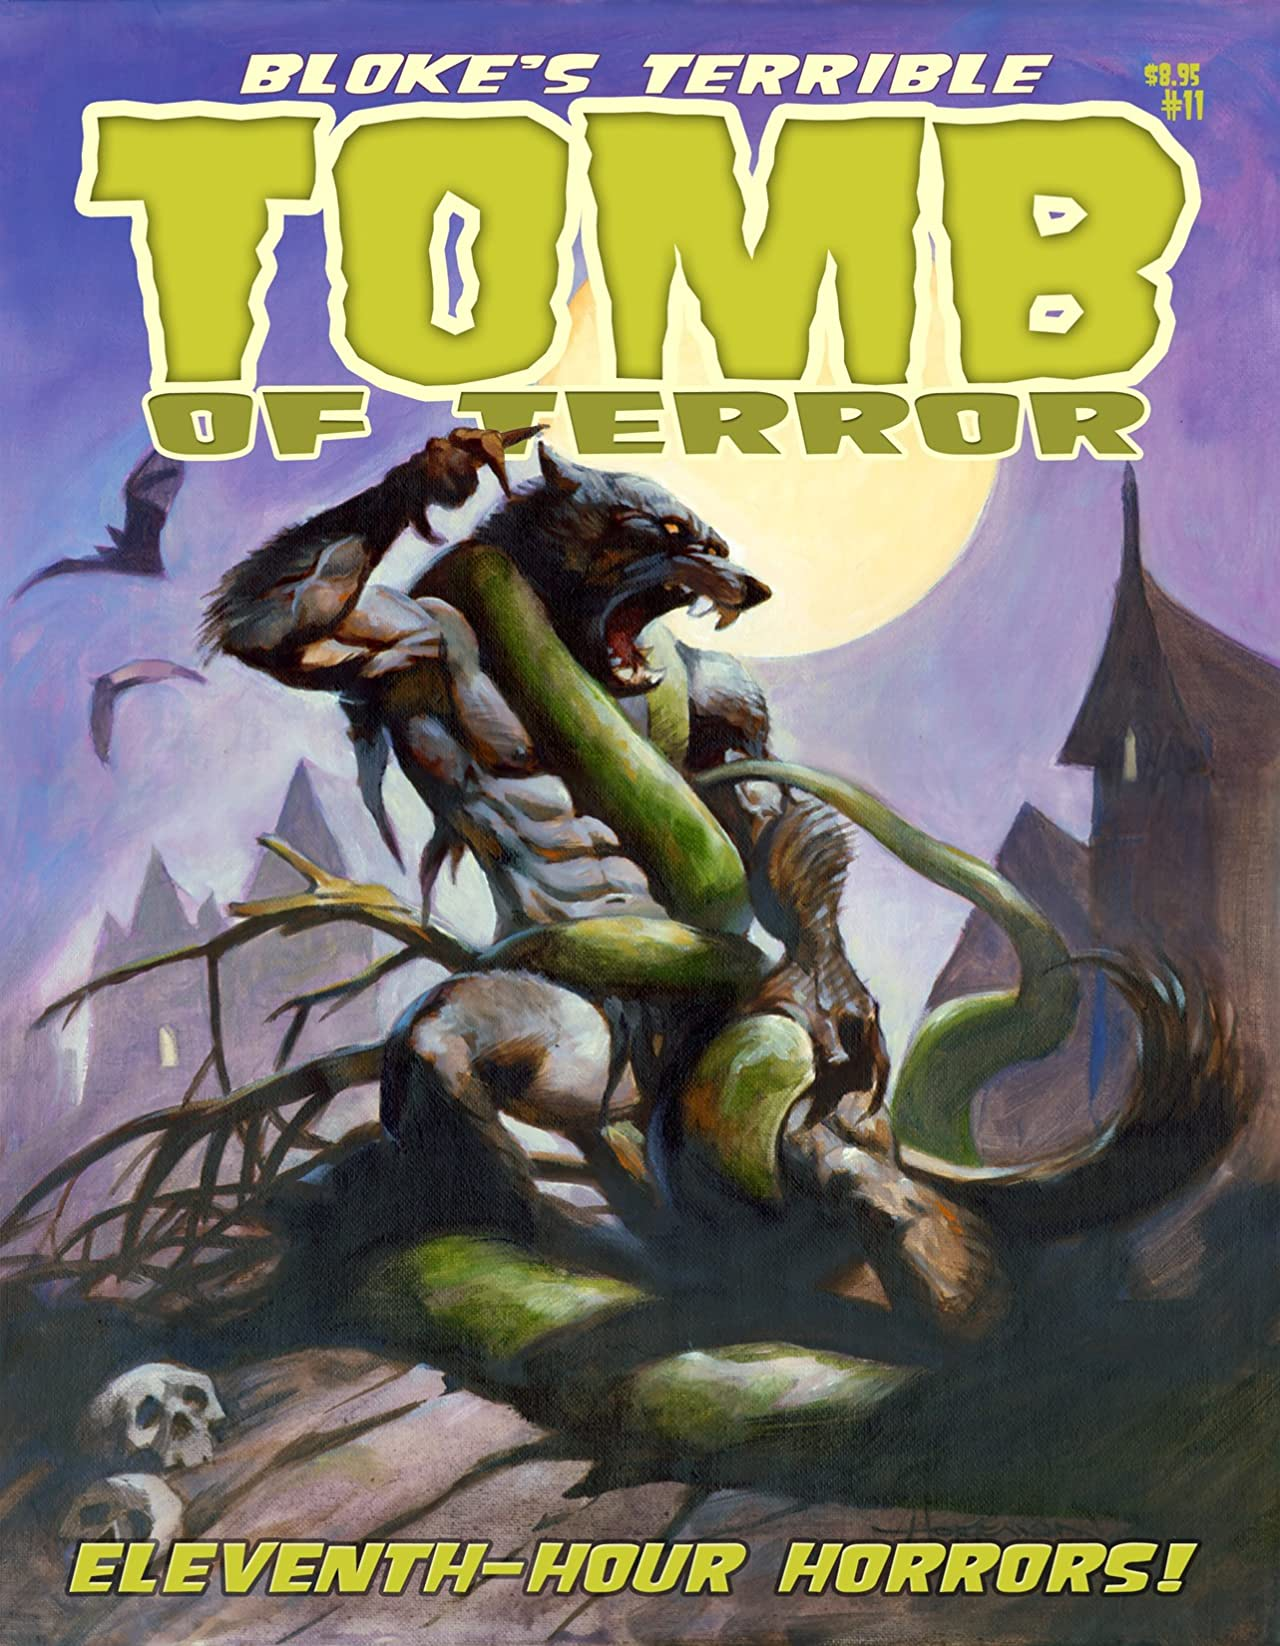 Bloke's Terrible Tomb Of Terror #11